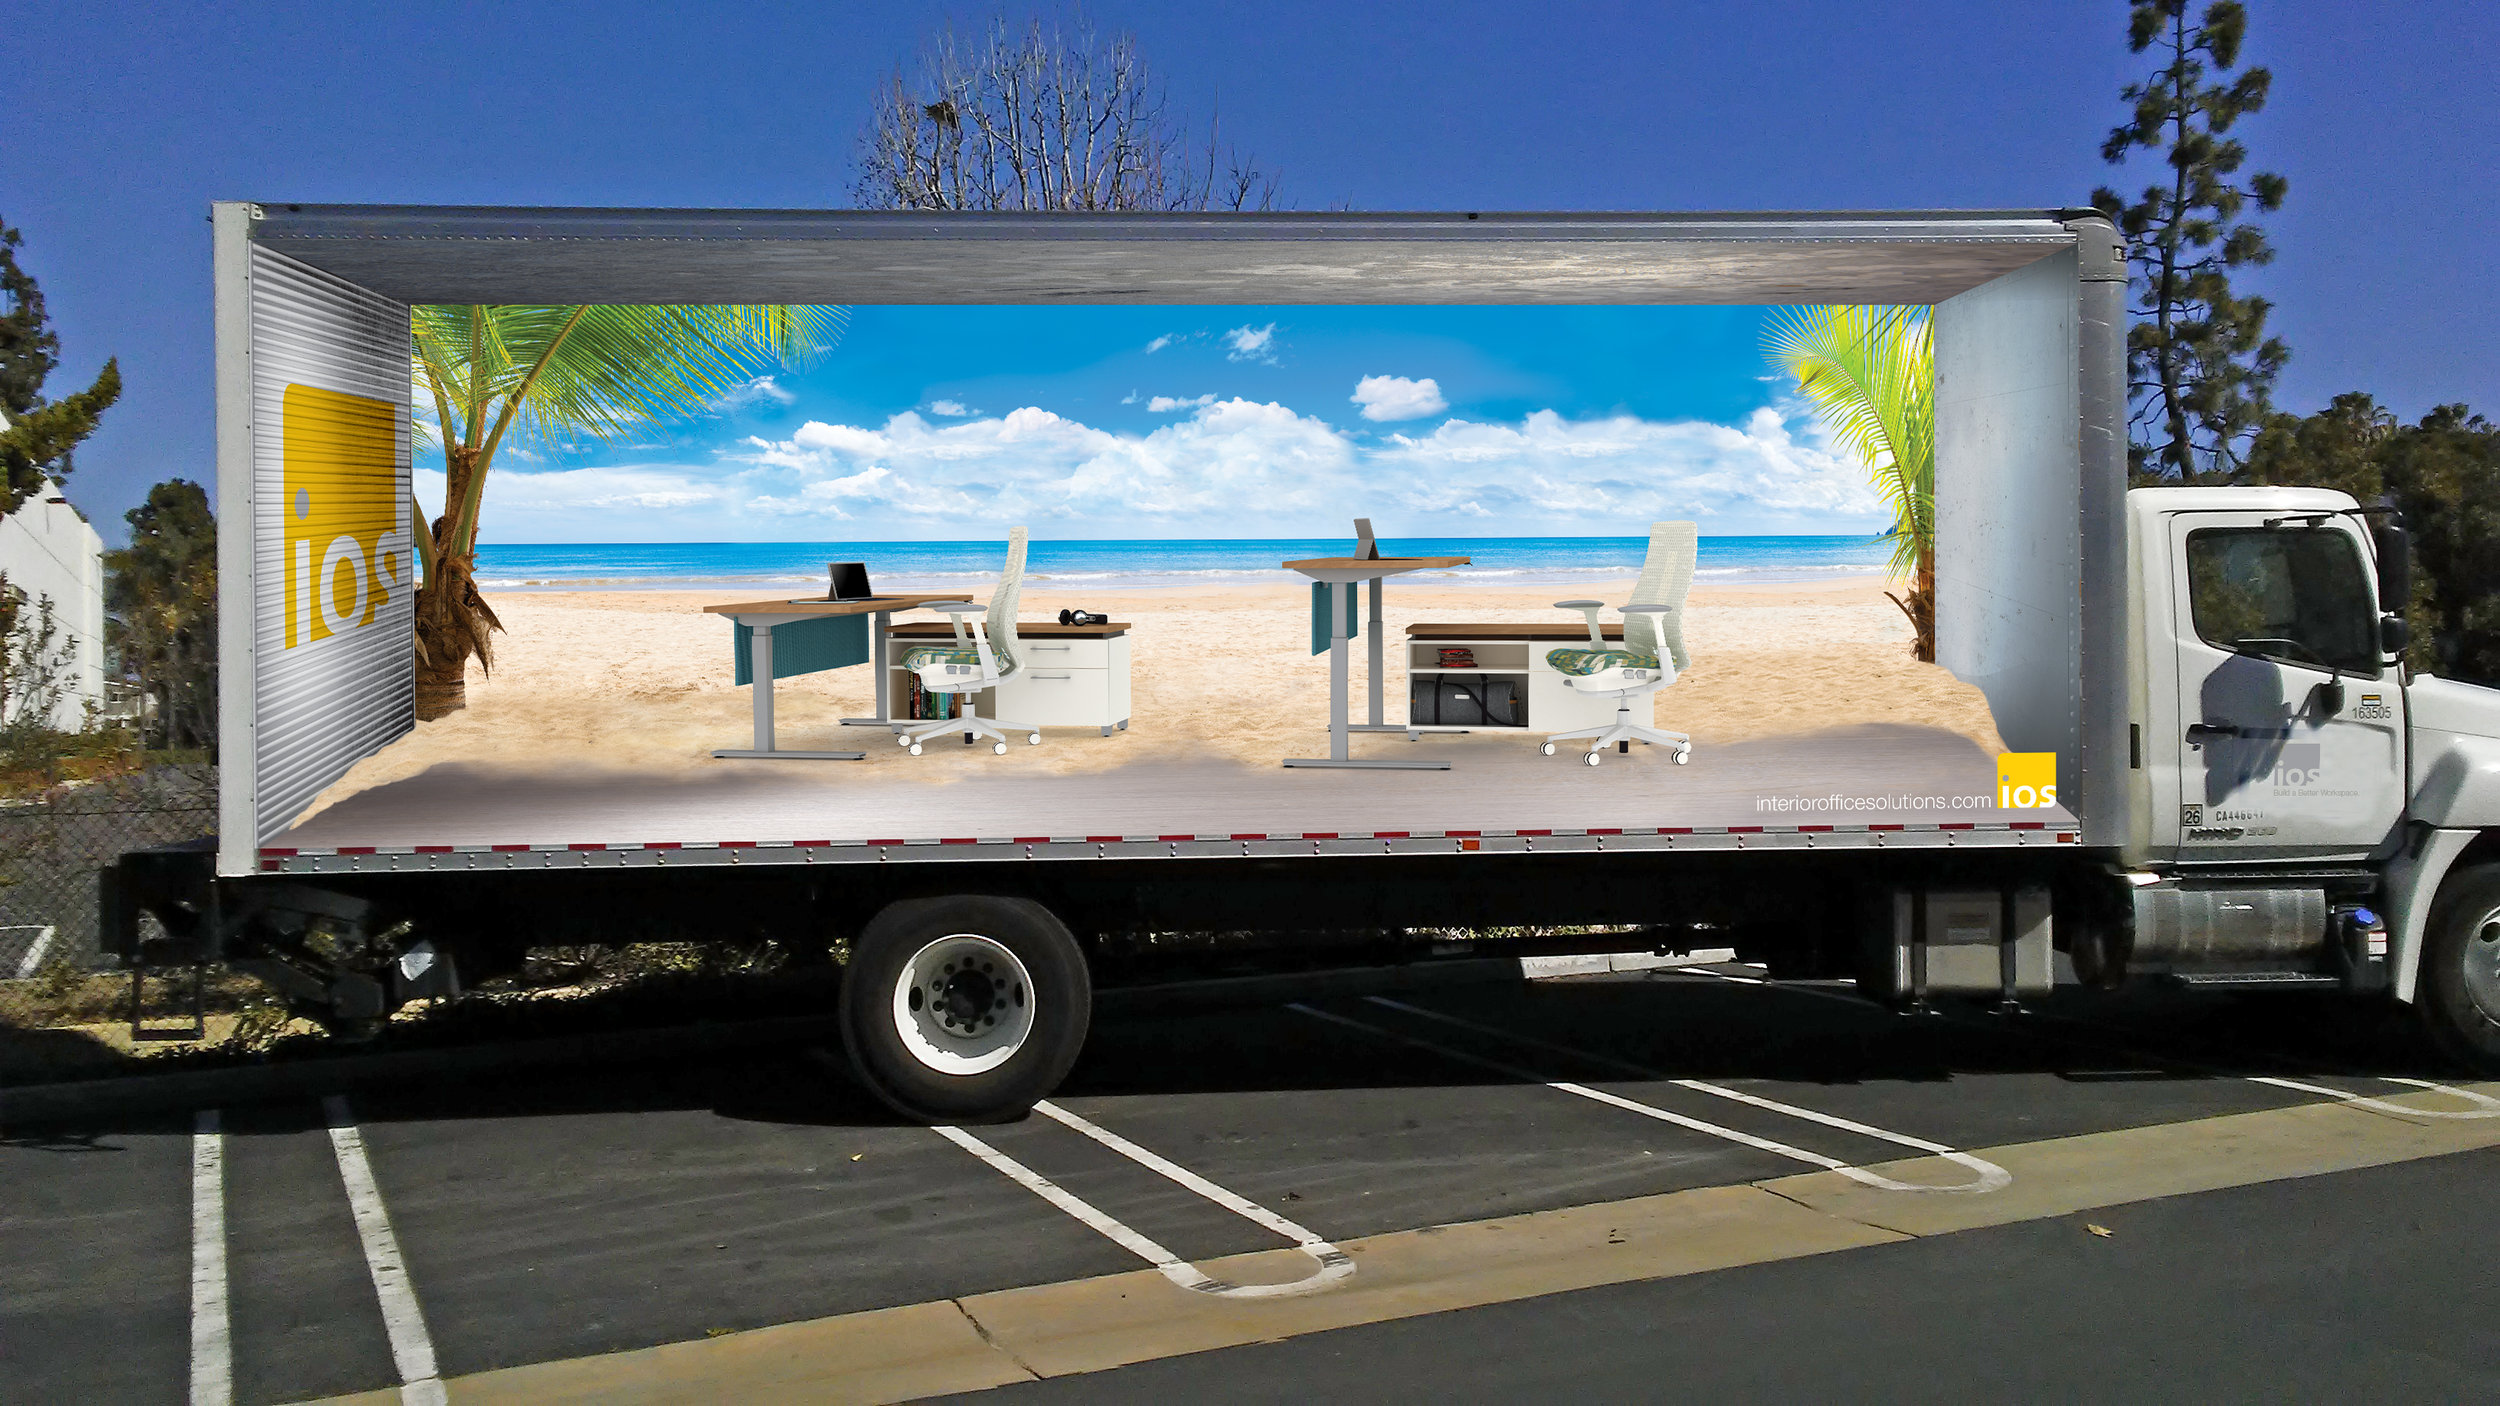 Truck wrap design for Interior Office Solutions' Southern California locations